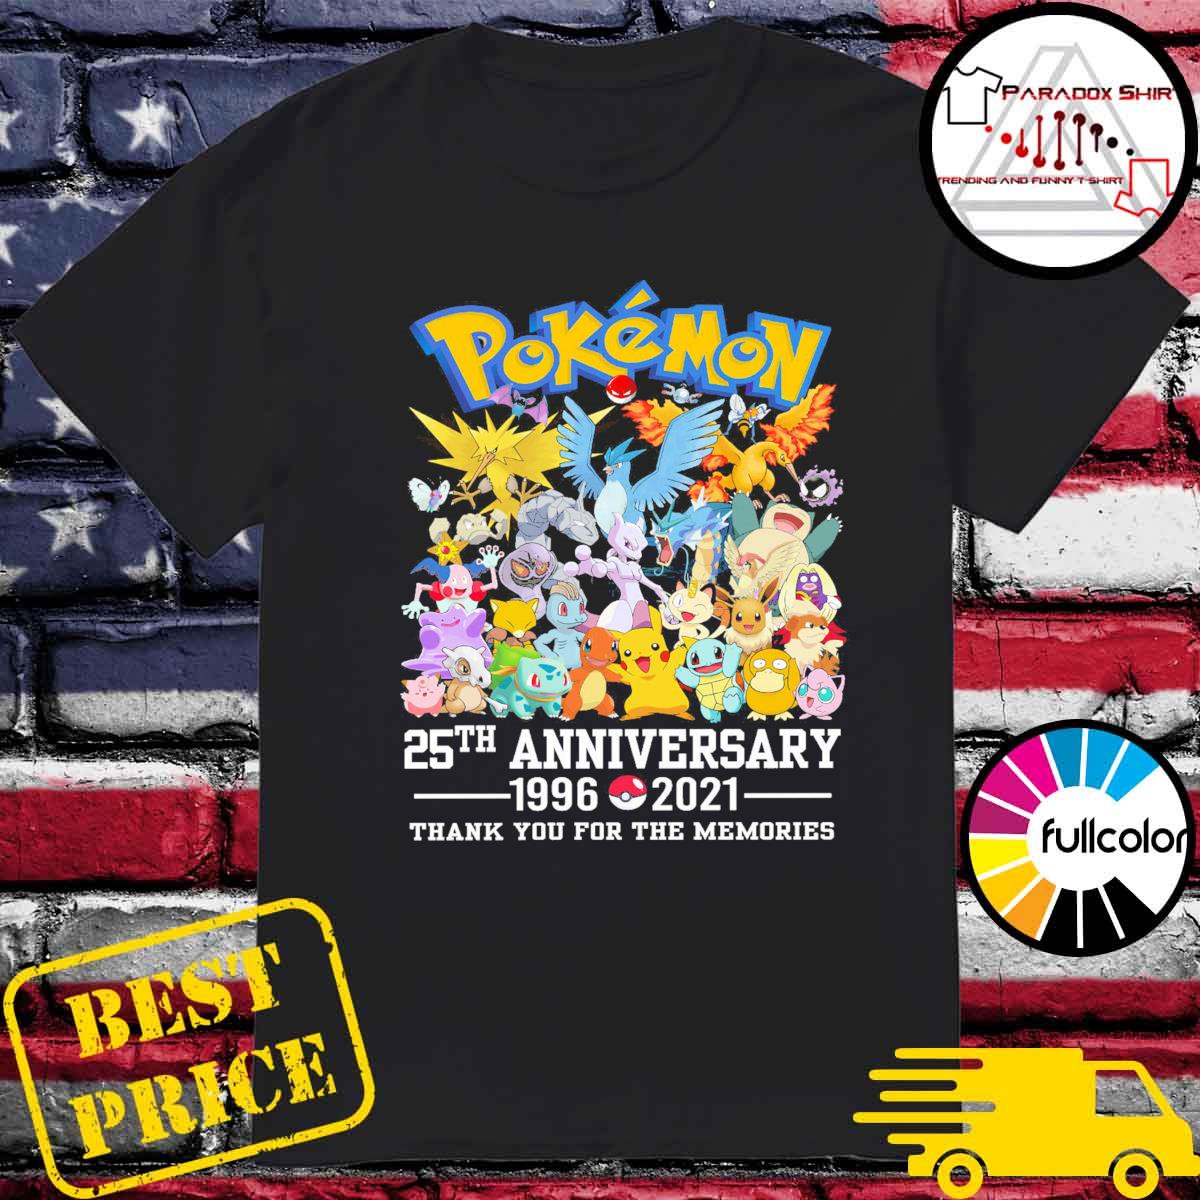 Pokémon 25th anniversary 1996 2021 thank you for the memories shirt